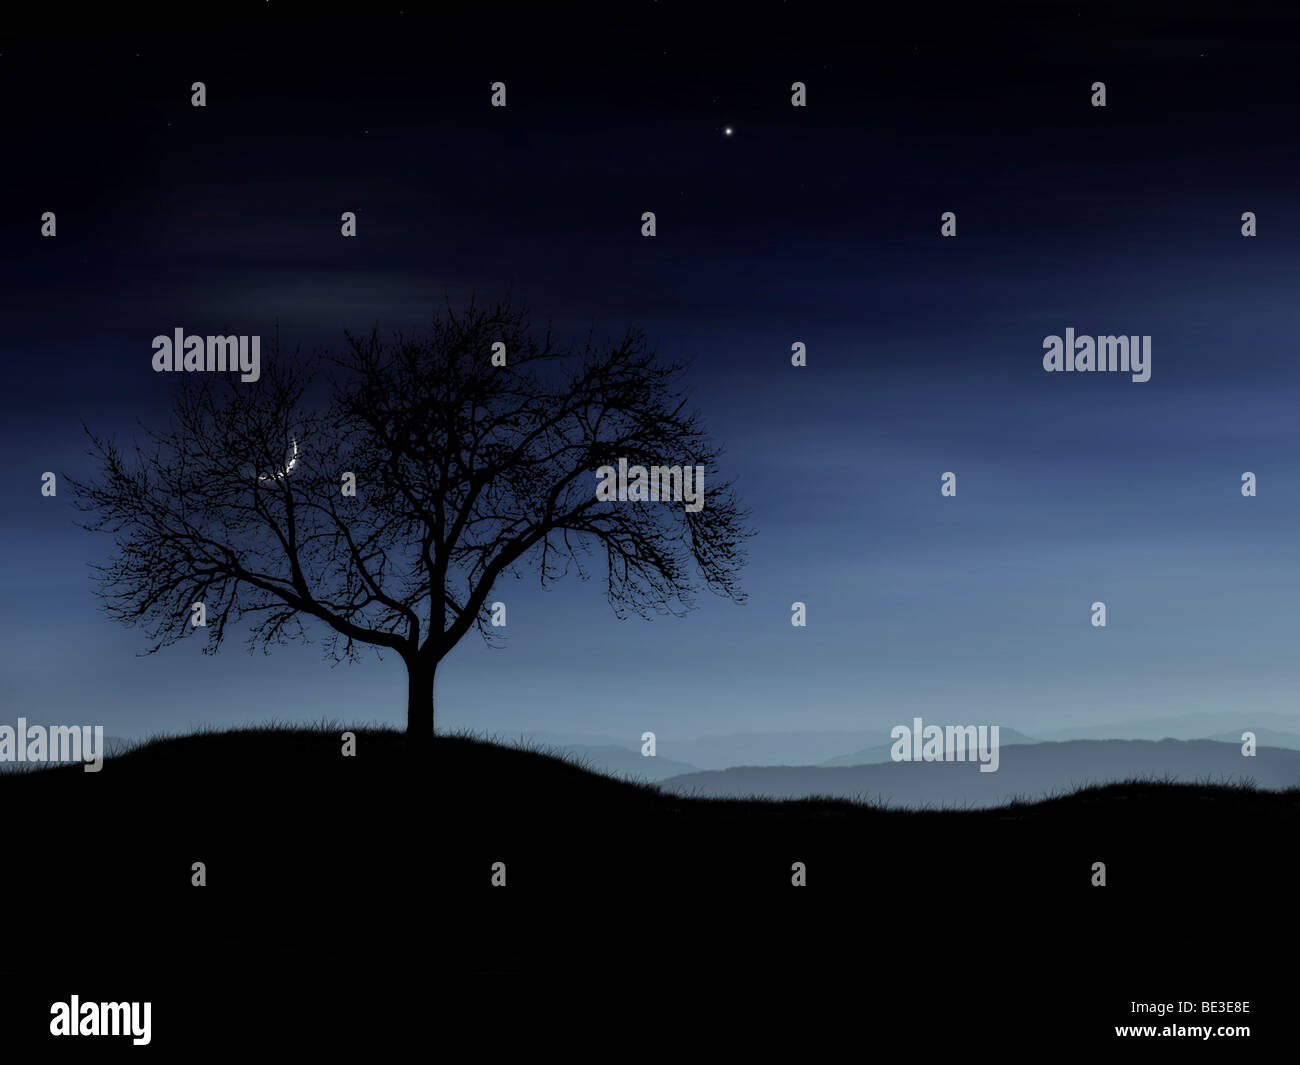 Digitally generated image of a tree and the moon. - Stock Image